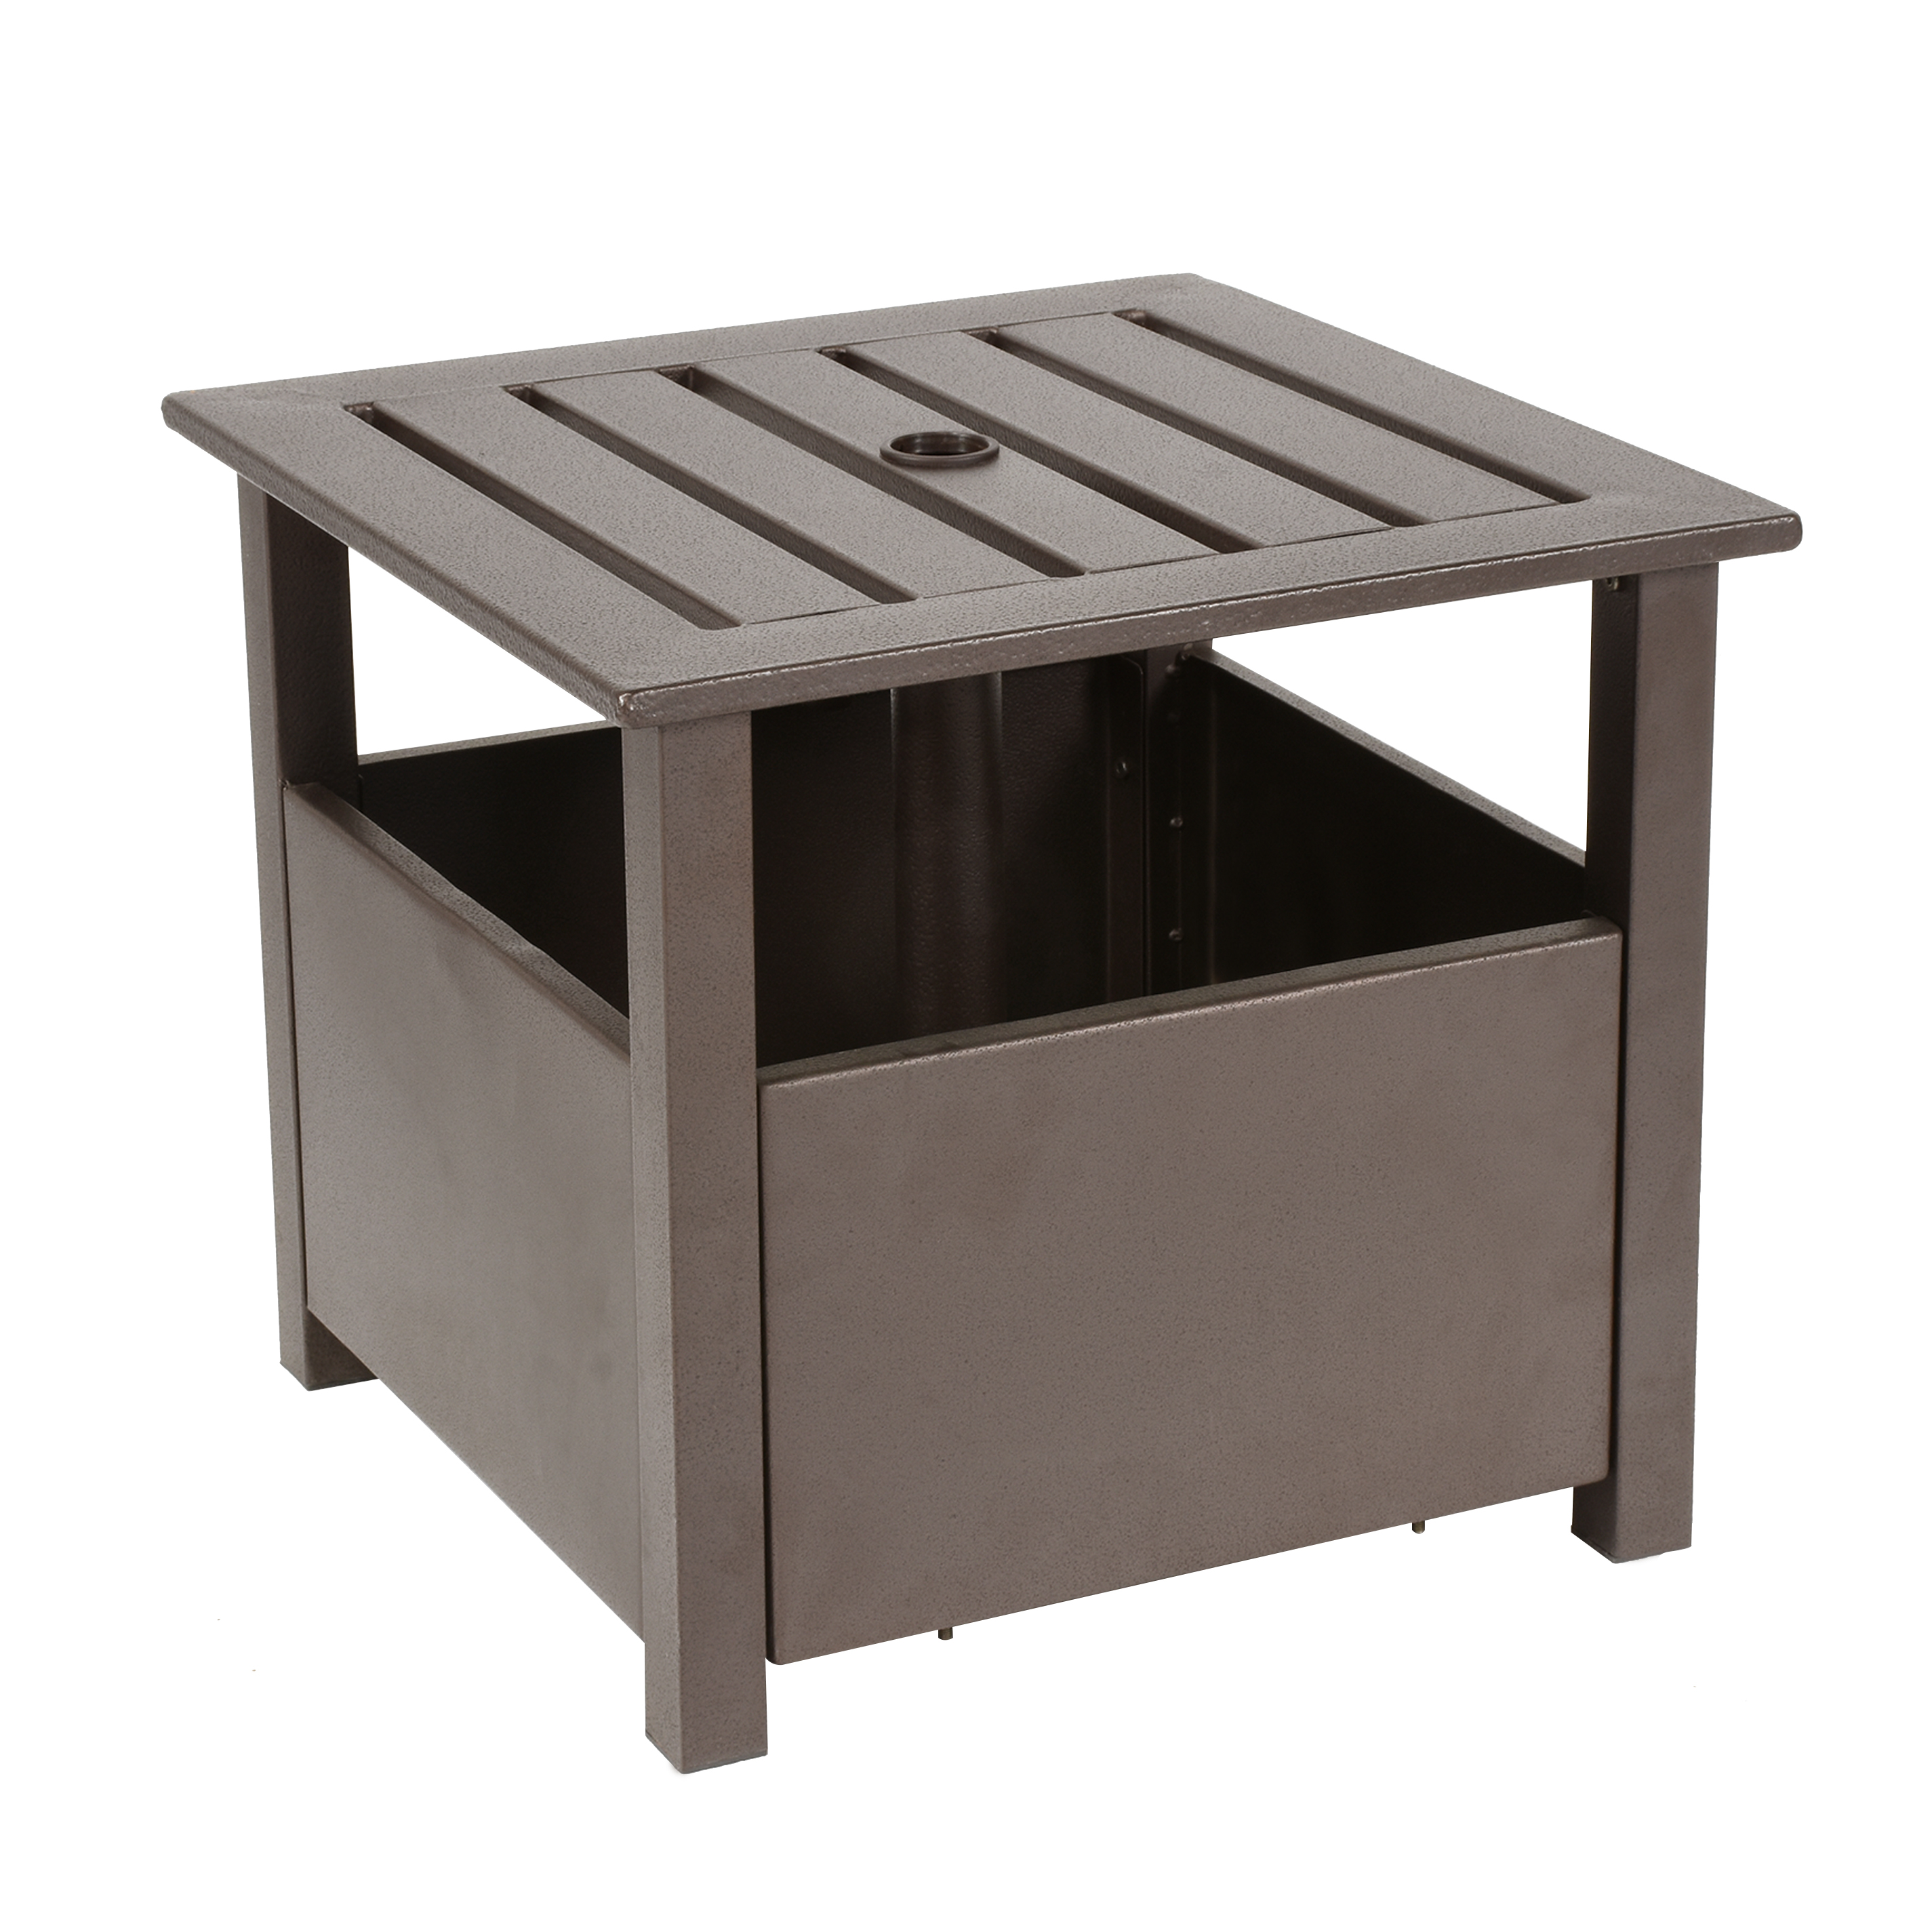 California Umbrella Sunmaster Series Aluminum Side Table with Umbrella Stand Fillable Base with Bronze